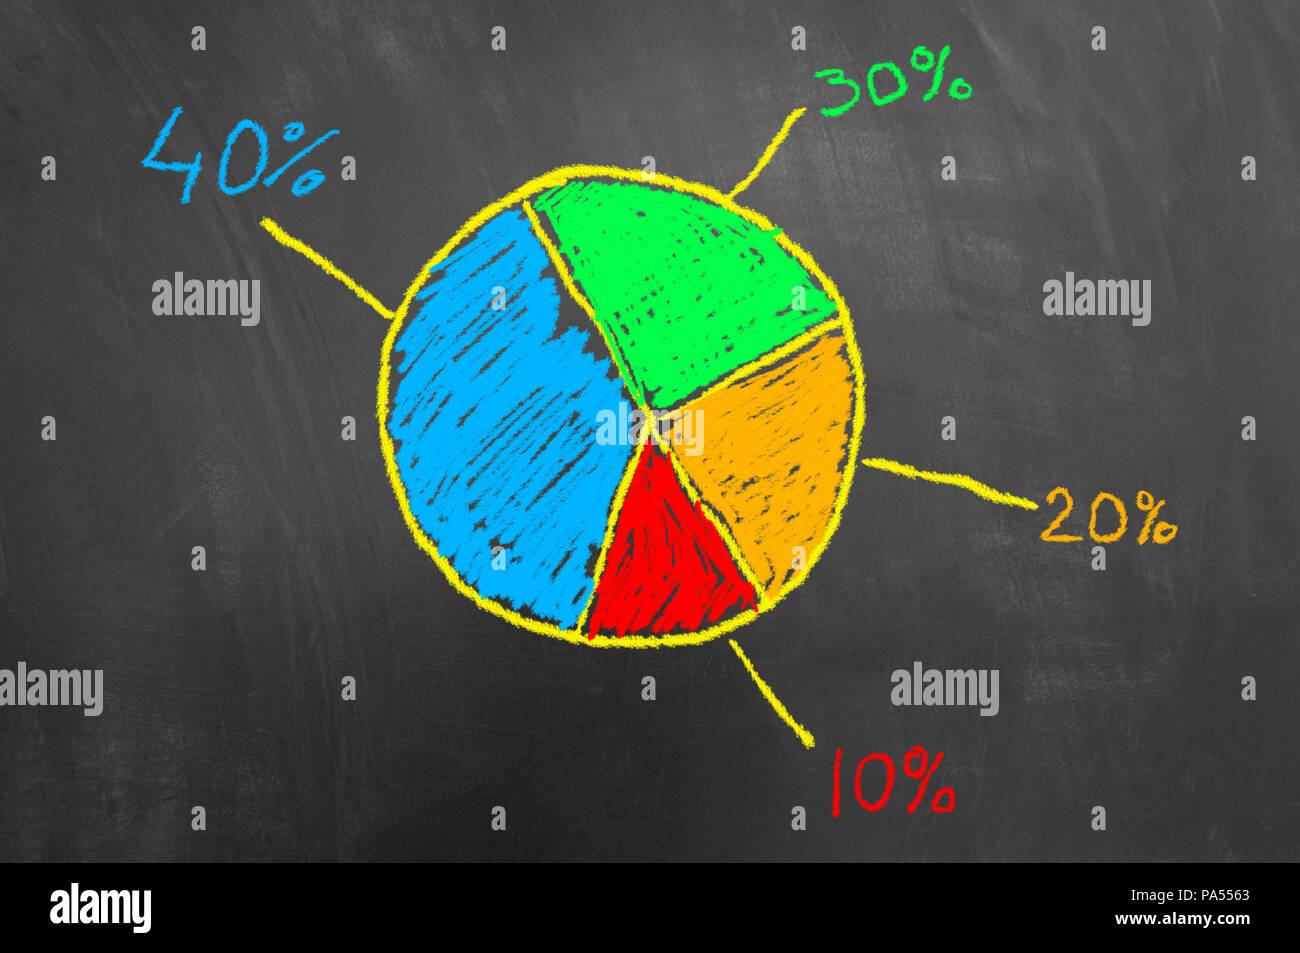 Colorful Chalk Pie Chart Graphic Drawing With Percentage On